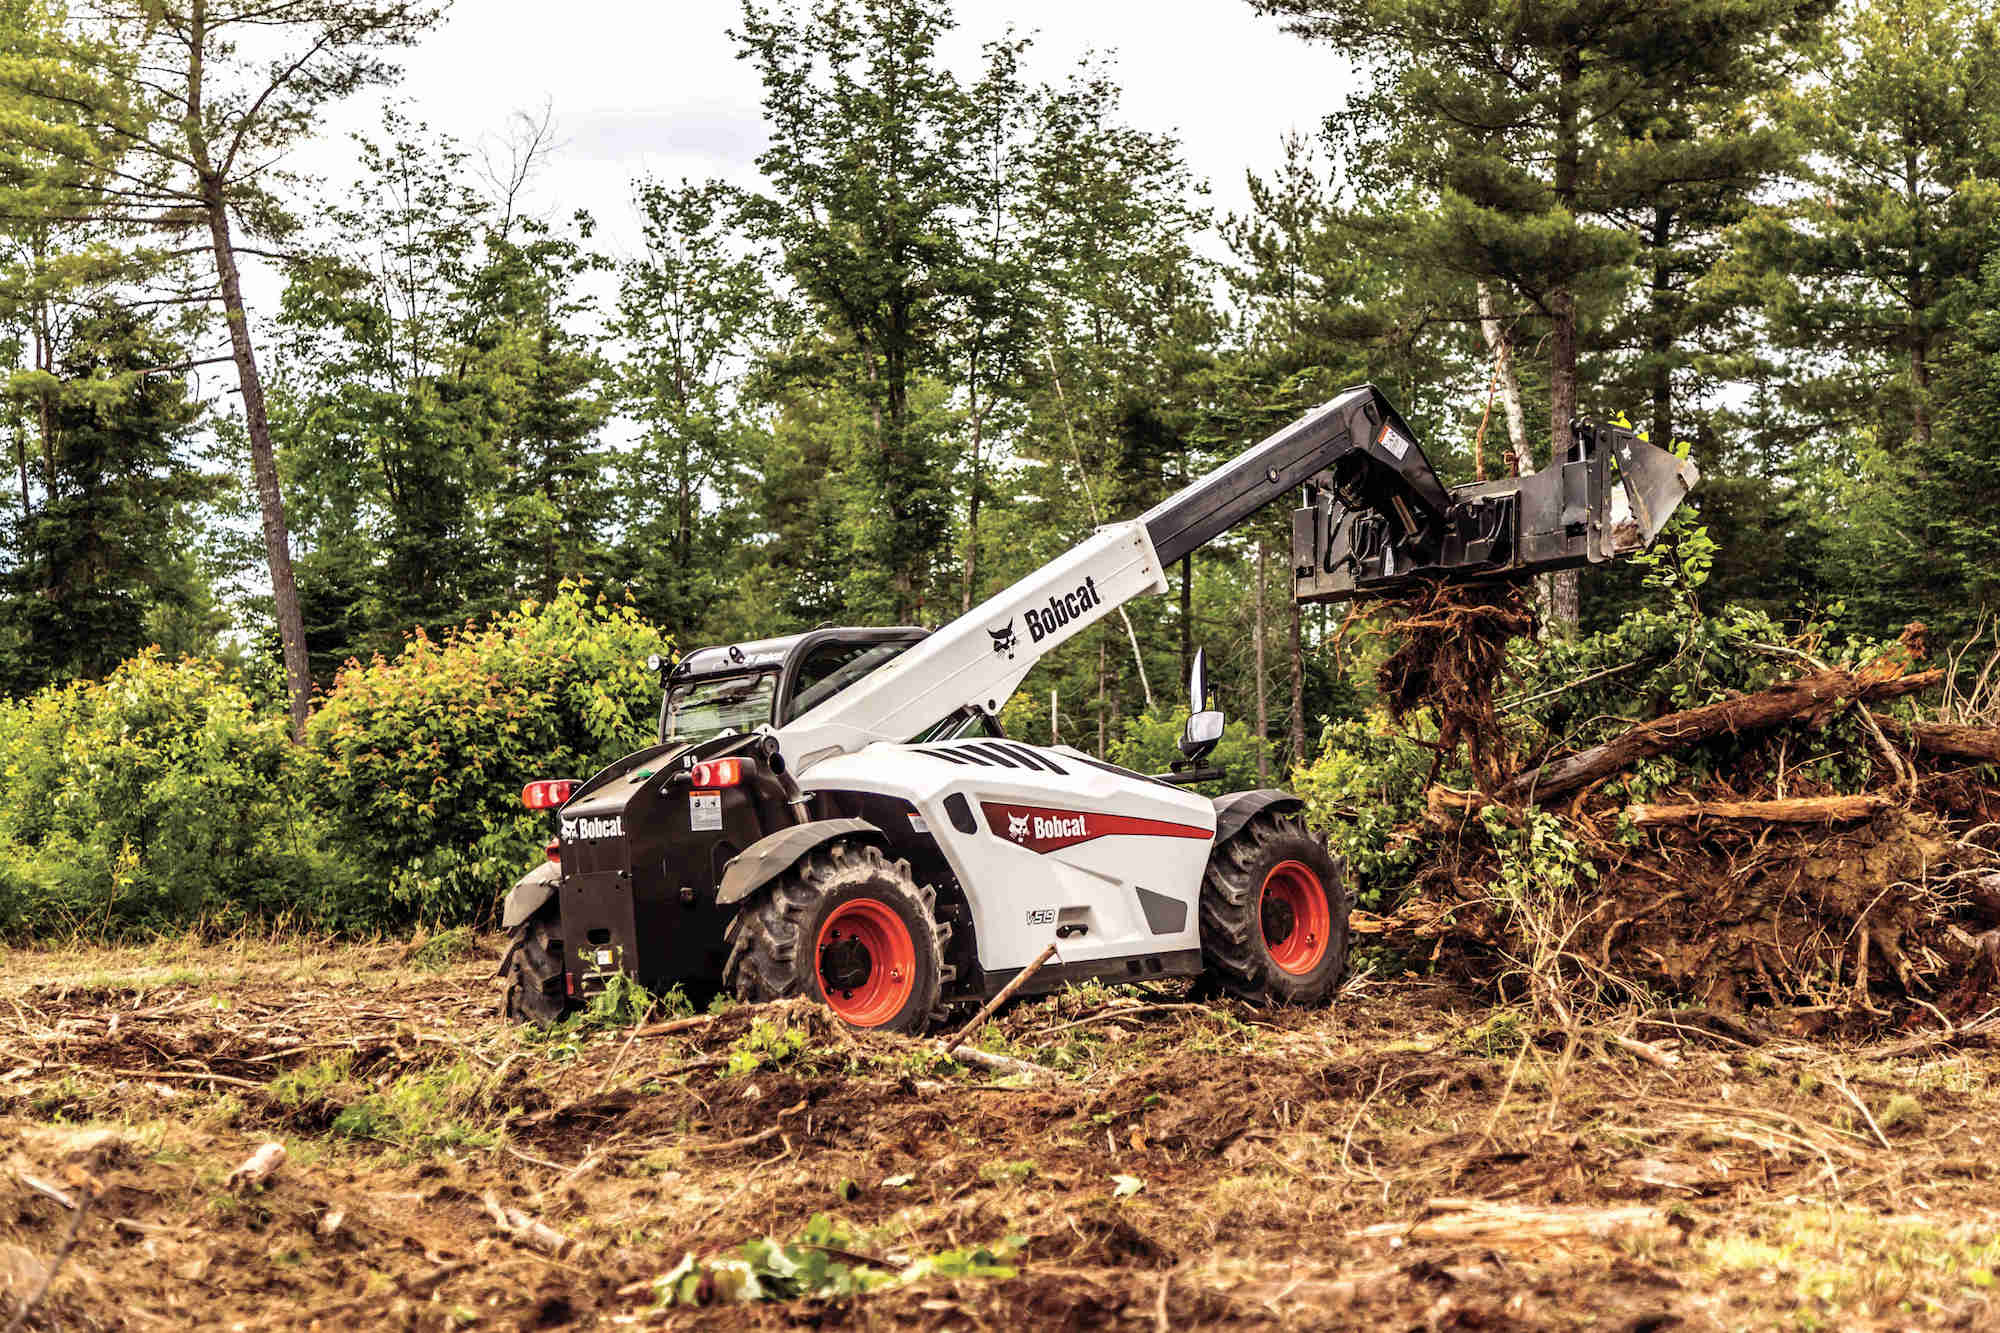 Bobcat's new V519 telehandler features versatile controls, Bob-Tach